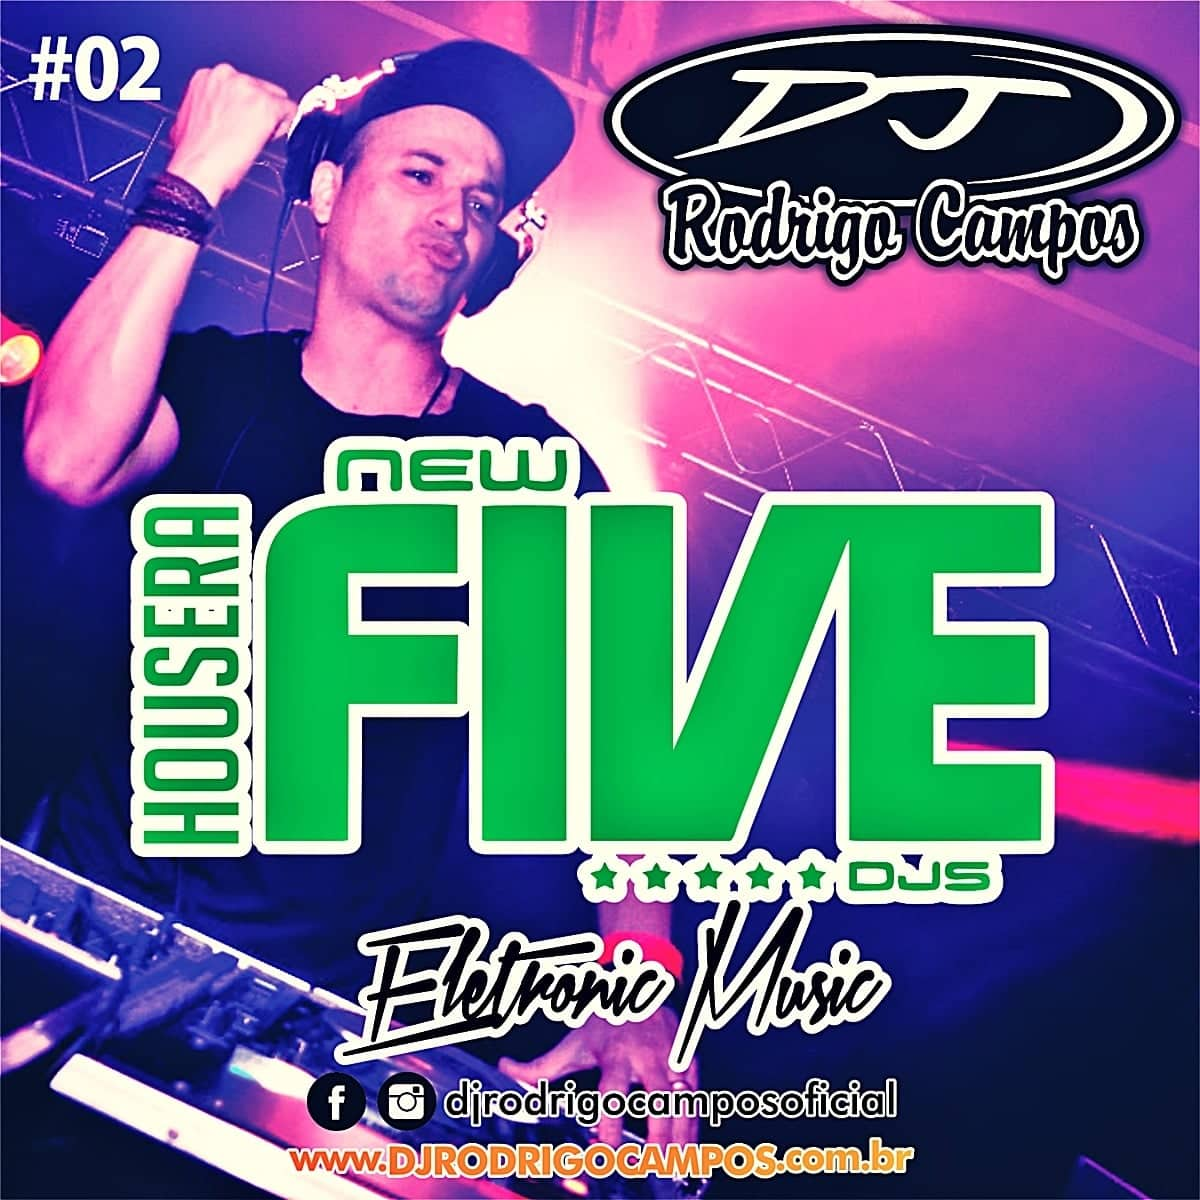 Housera New Five Djs Vol 02